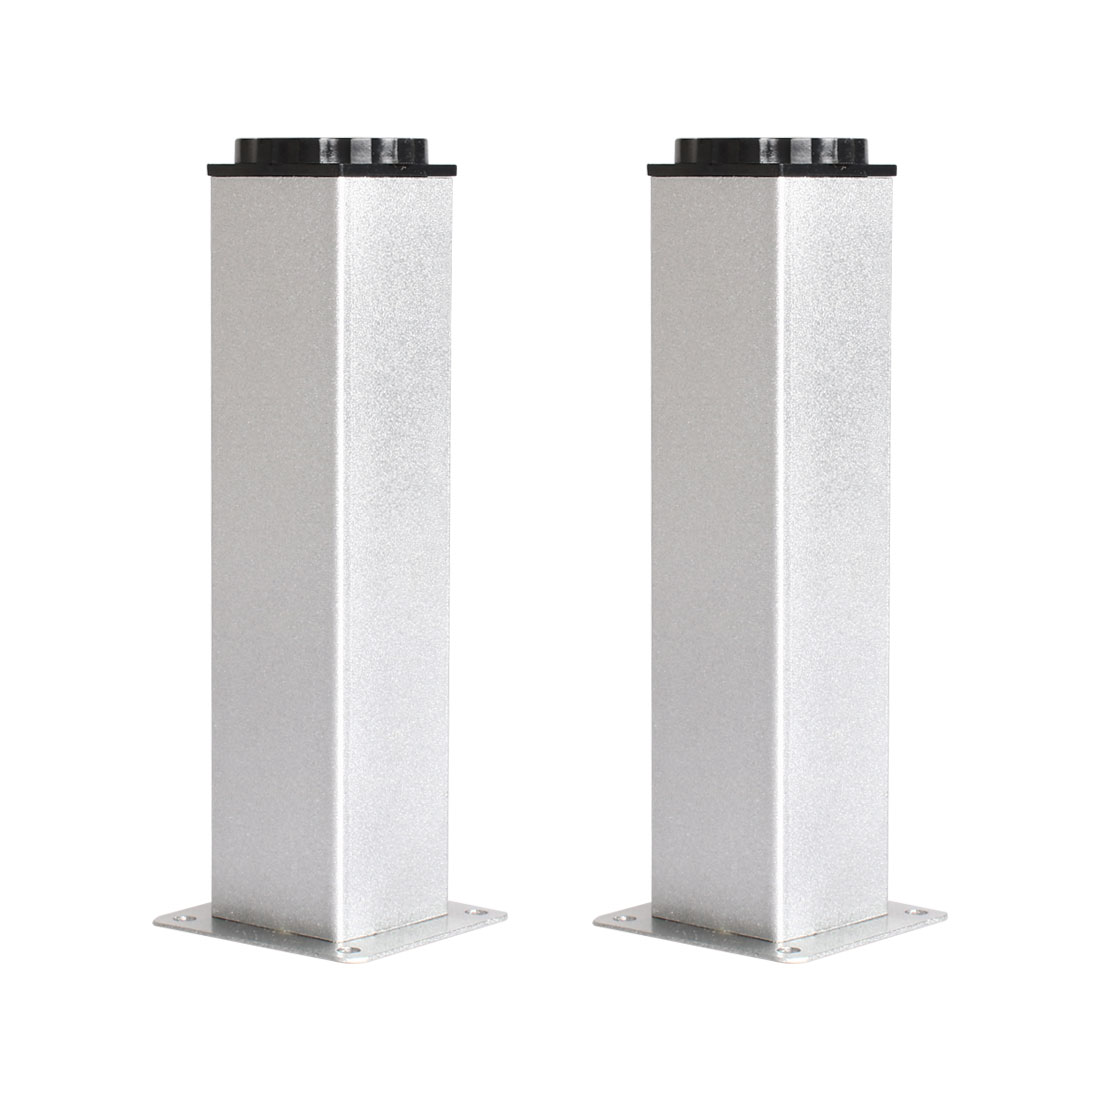 "7"" Furniture Leg Aluminium Alloy Table Height Replacement Adjustable Feet 2pcs"